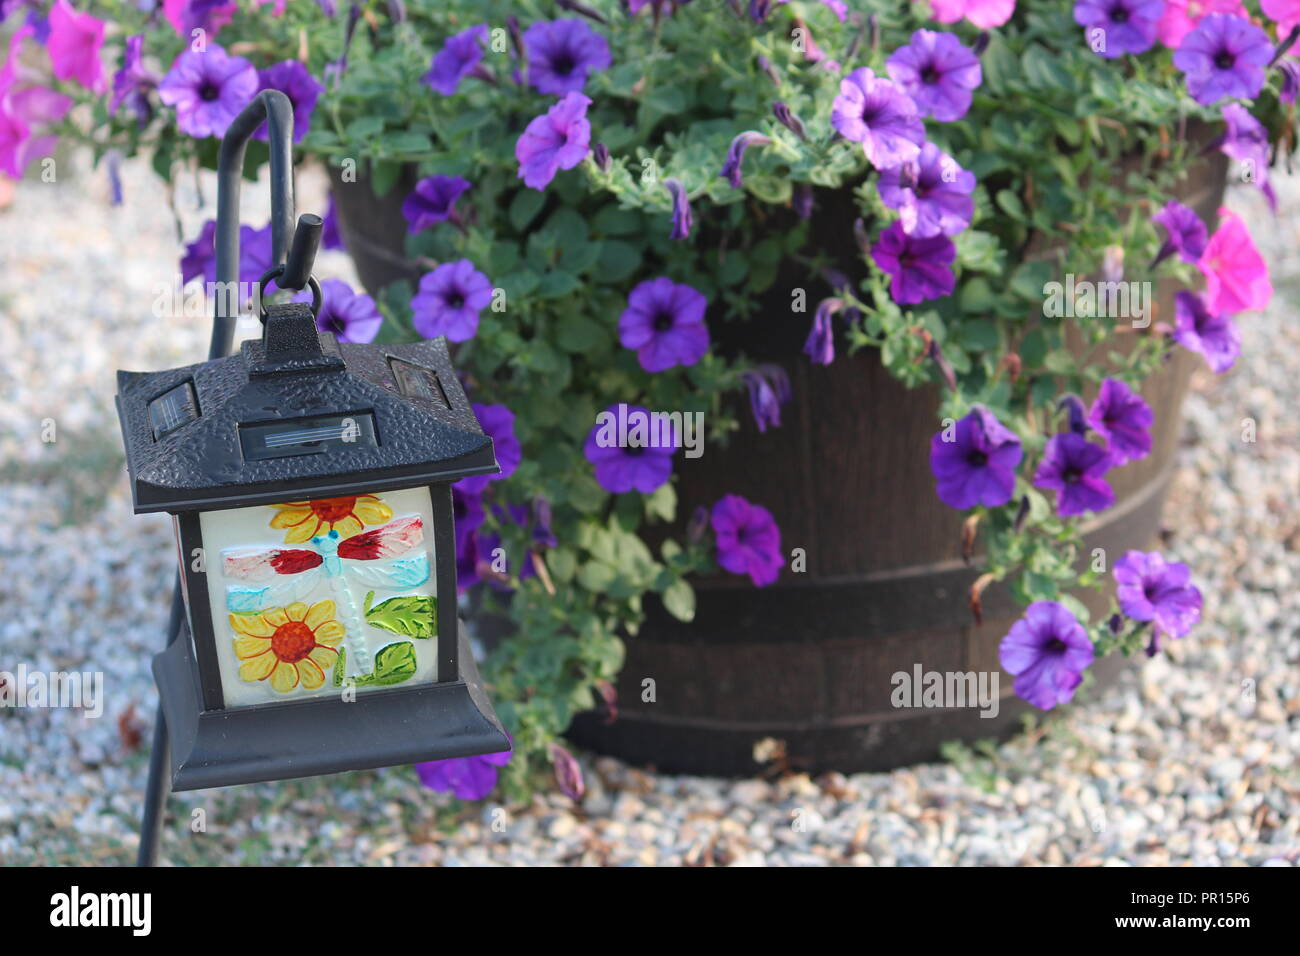 Million bells flowers in a barrel with a garden lantern - Stock Image